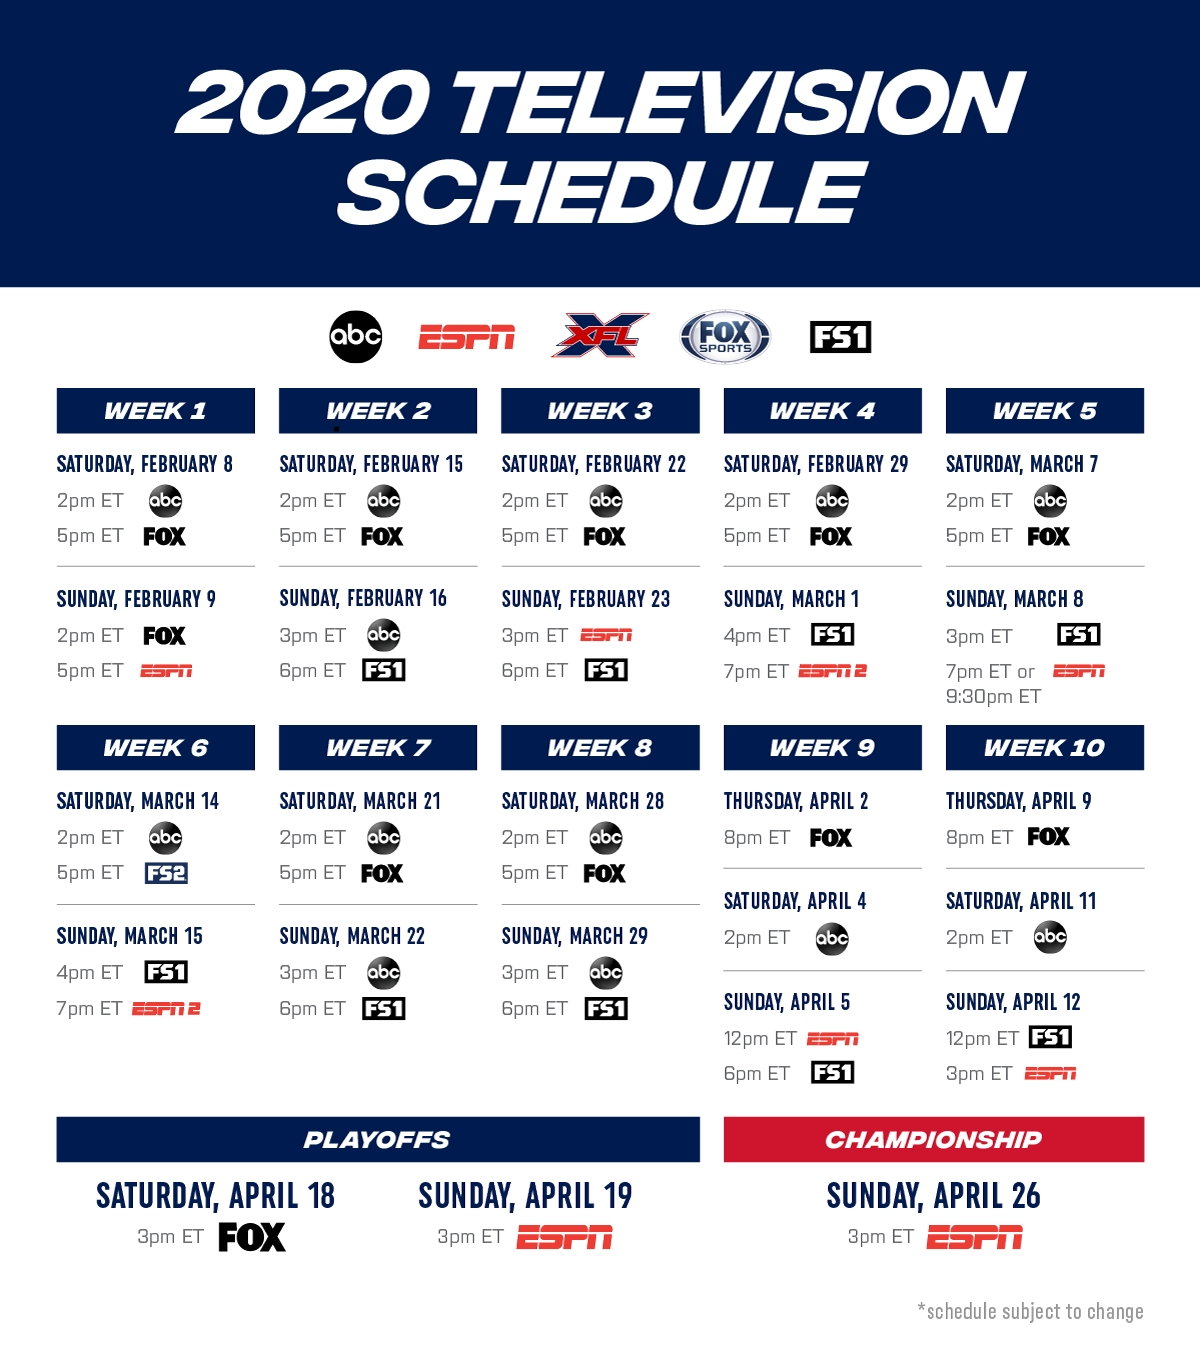 Xfl 2020 Television Schedule Review with Printable 2019 2020 Nfl Schedule